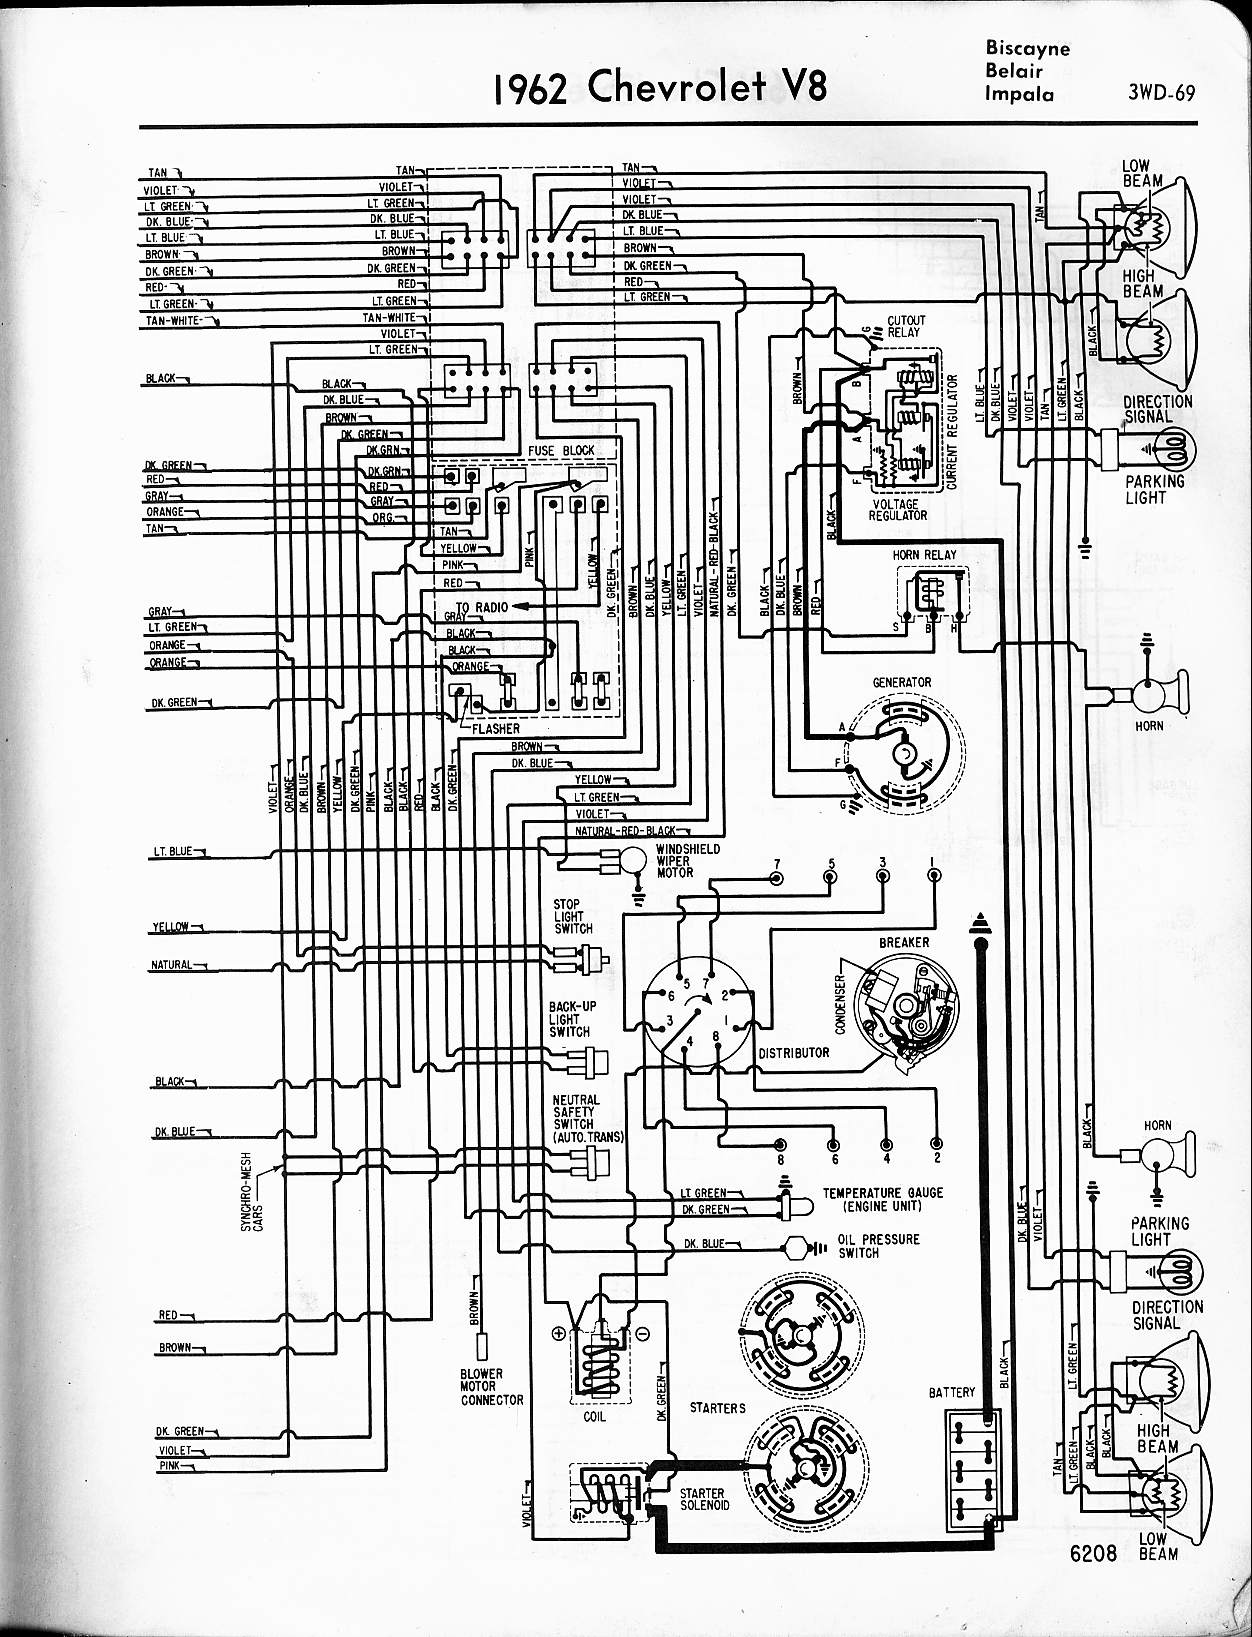 Wire Diagram 69 C20 Chevy - WIRE Center •